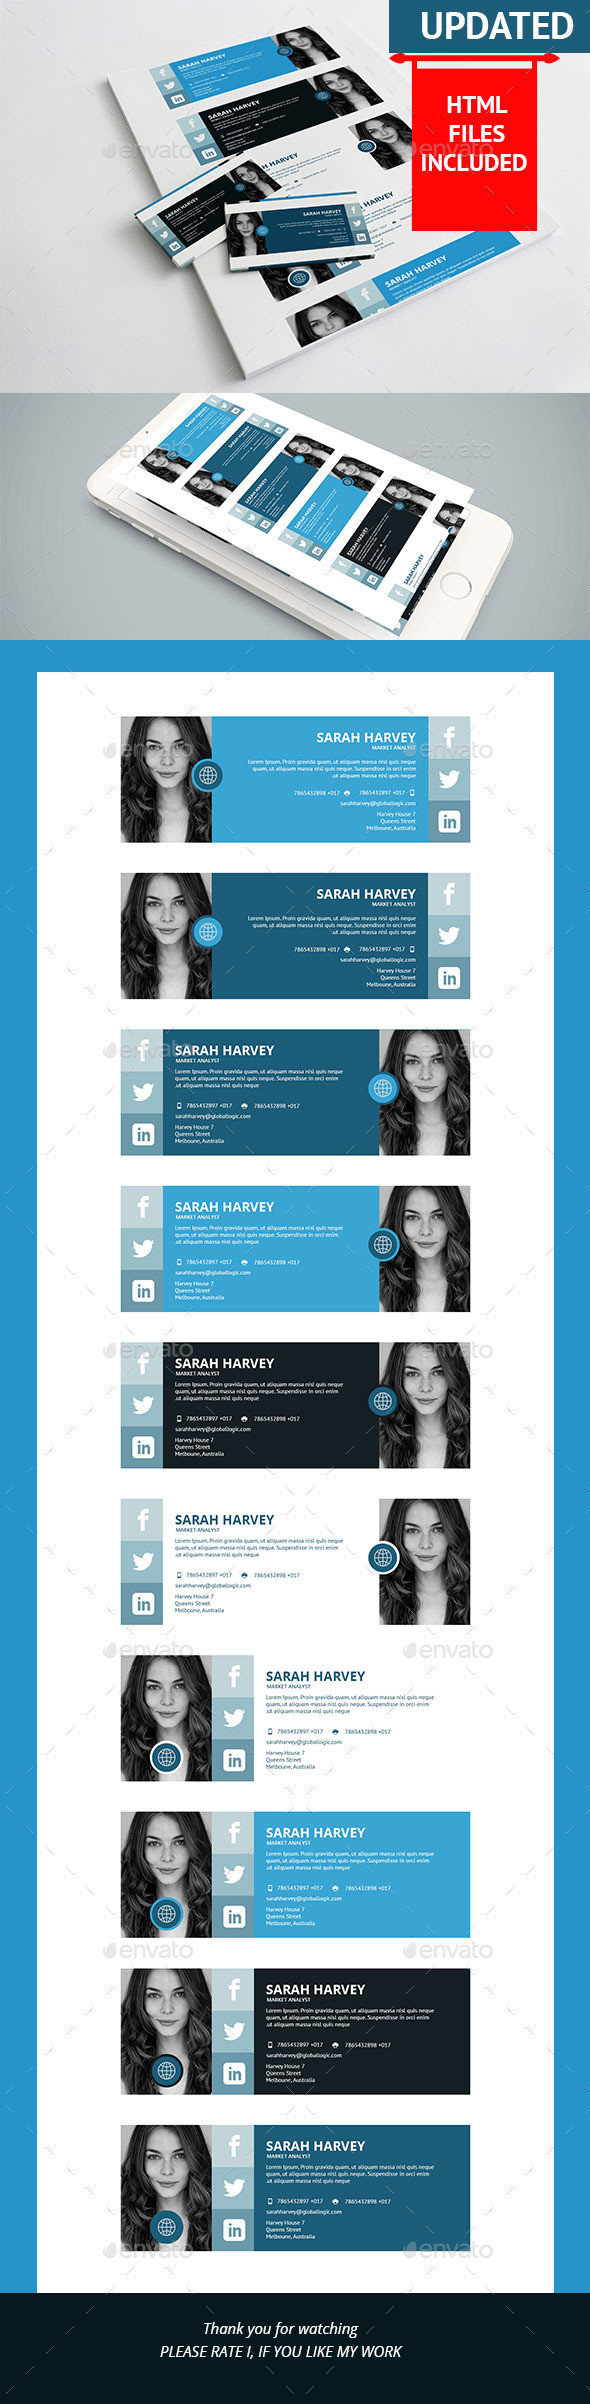 10 Corporate E-Signature PSD+HTML Template - Miscellaneous Social Media